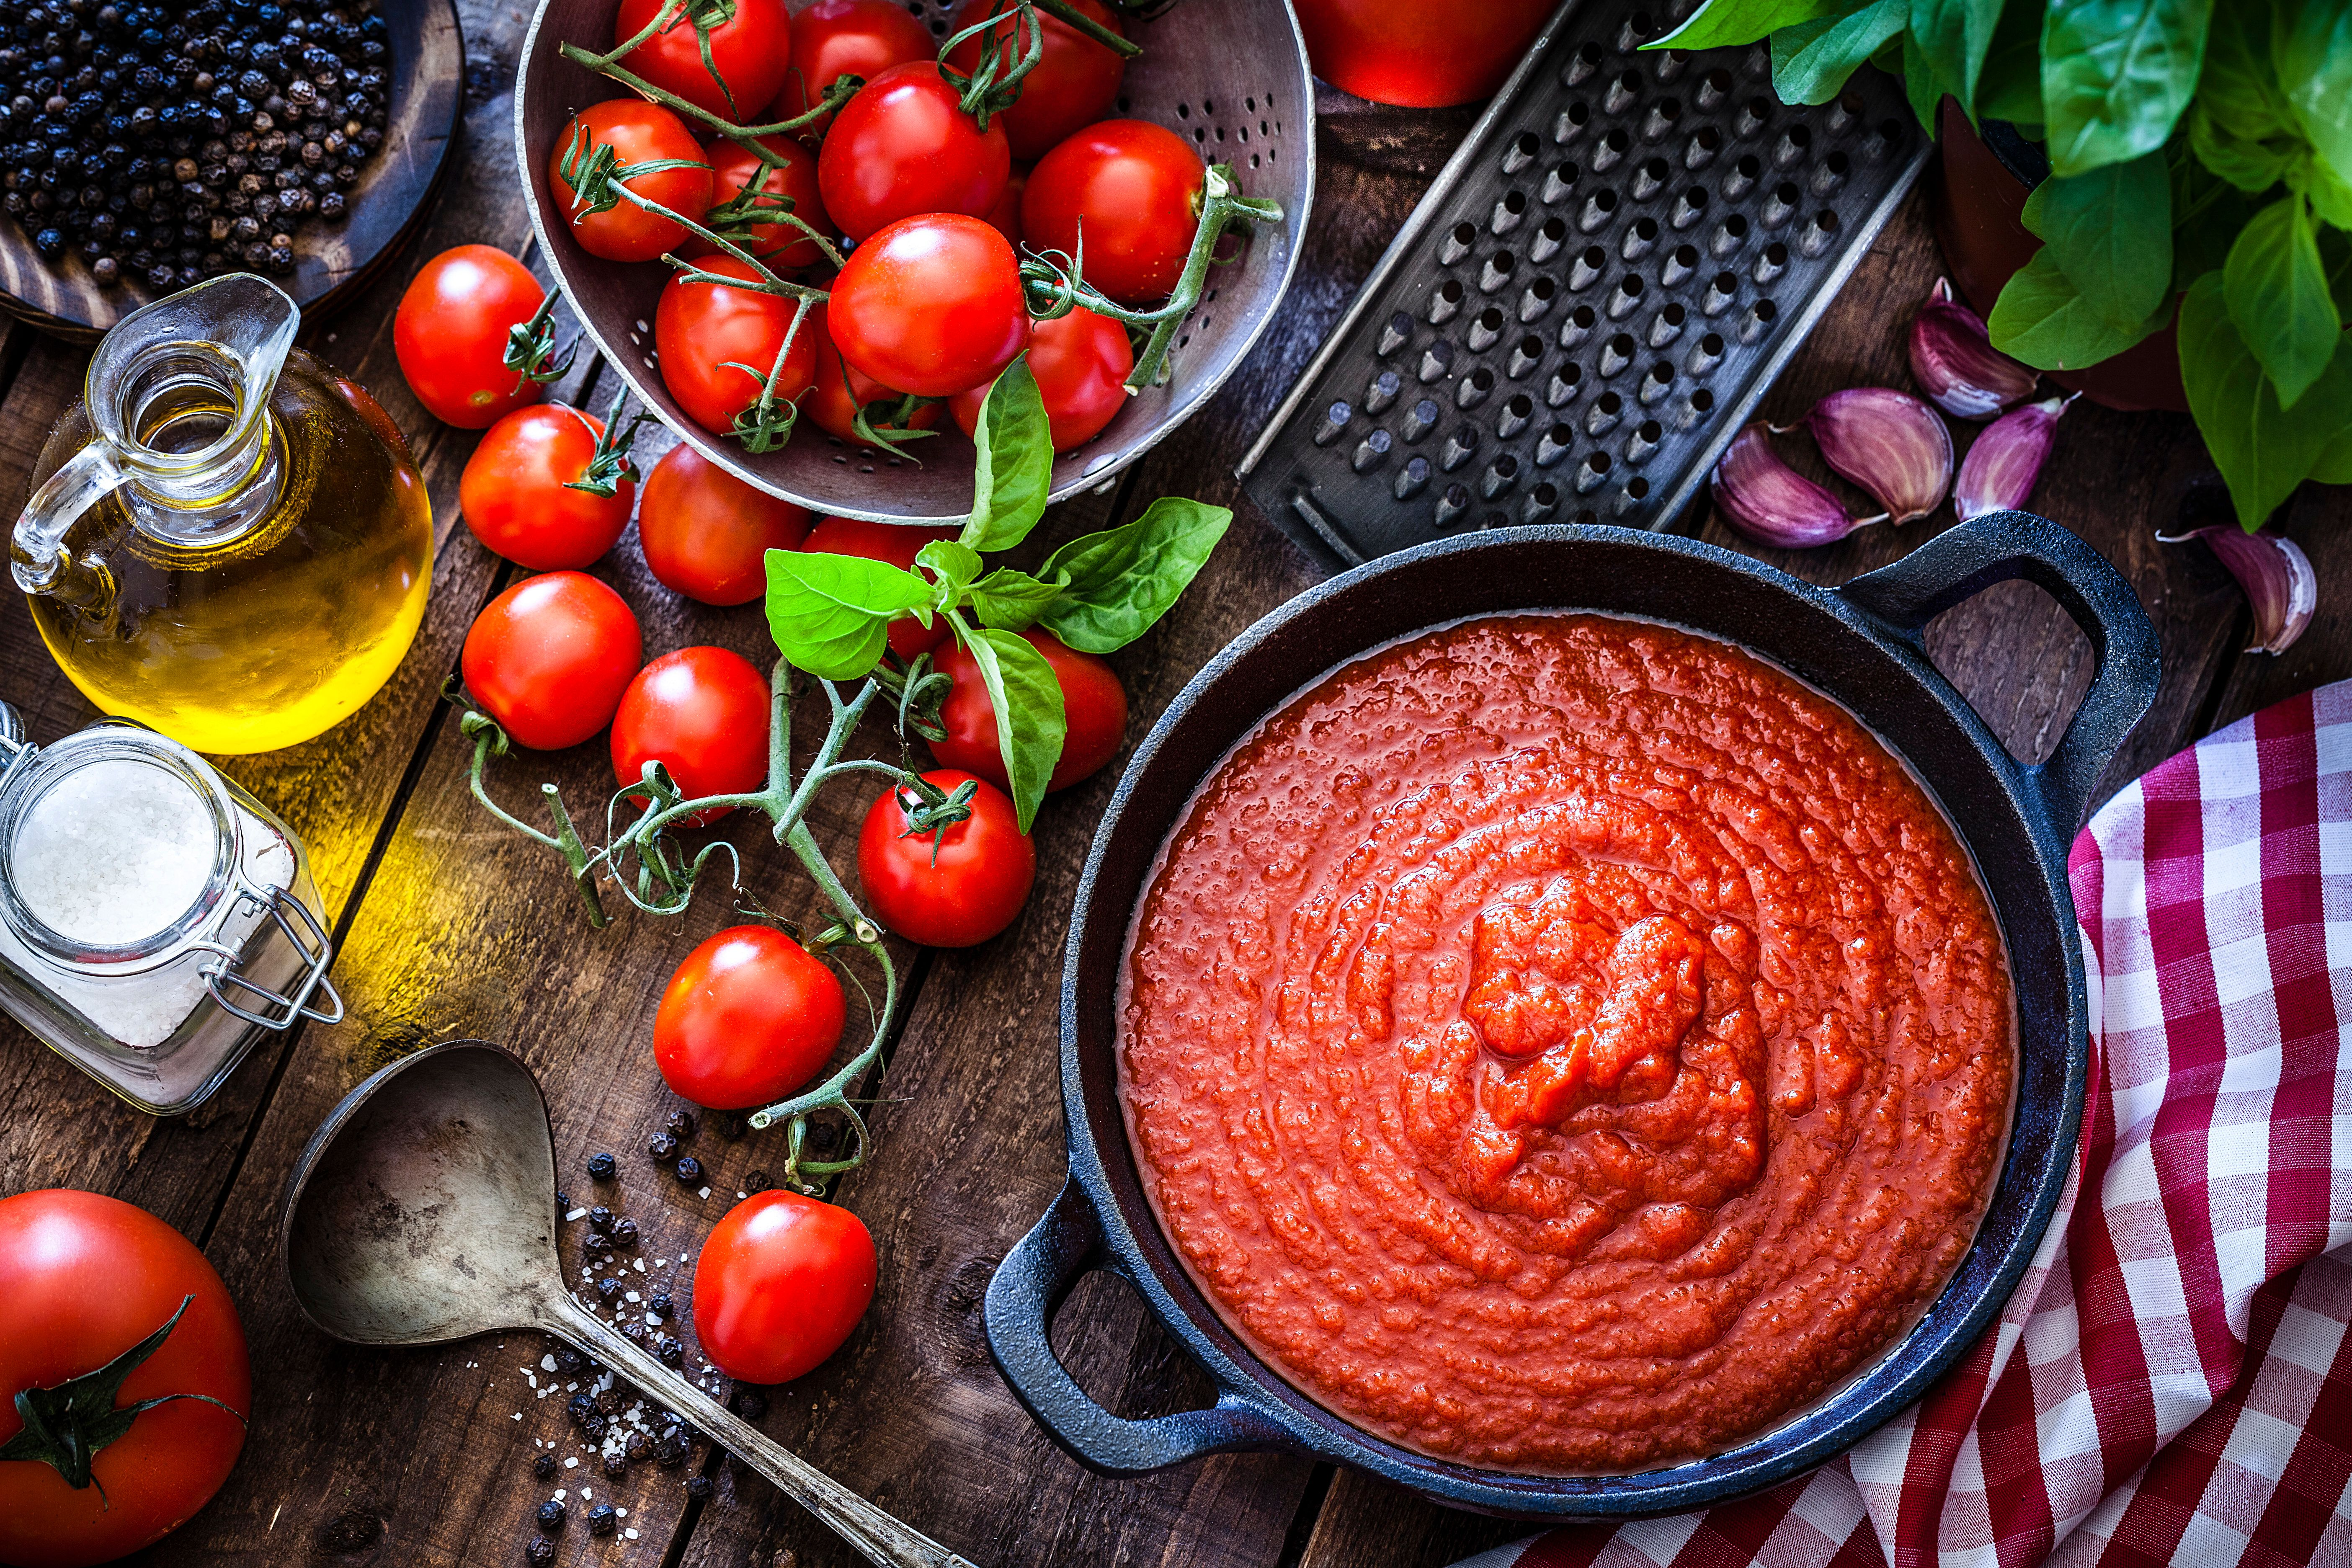 The Major Mistake Americans Make With Pasta Sauce, According To Real